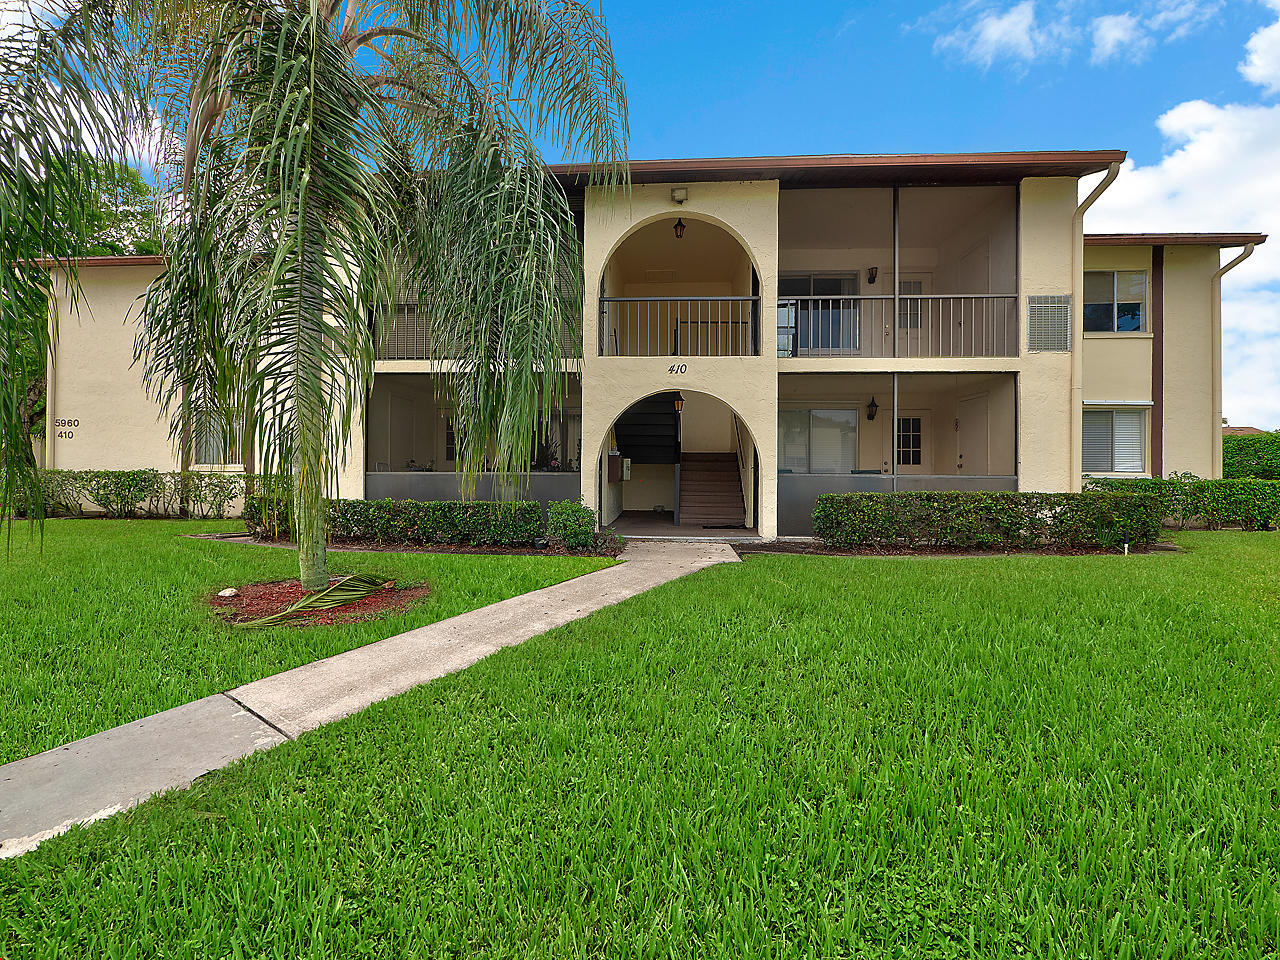 Home for sale in PINE RIDGE IV COND DECL FILED 6-16-80 Lake Worth Florida